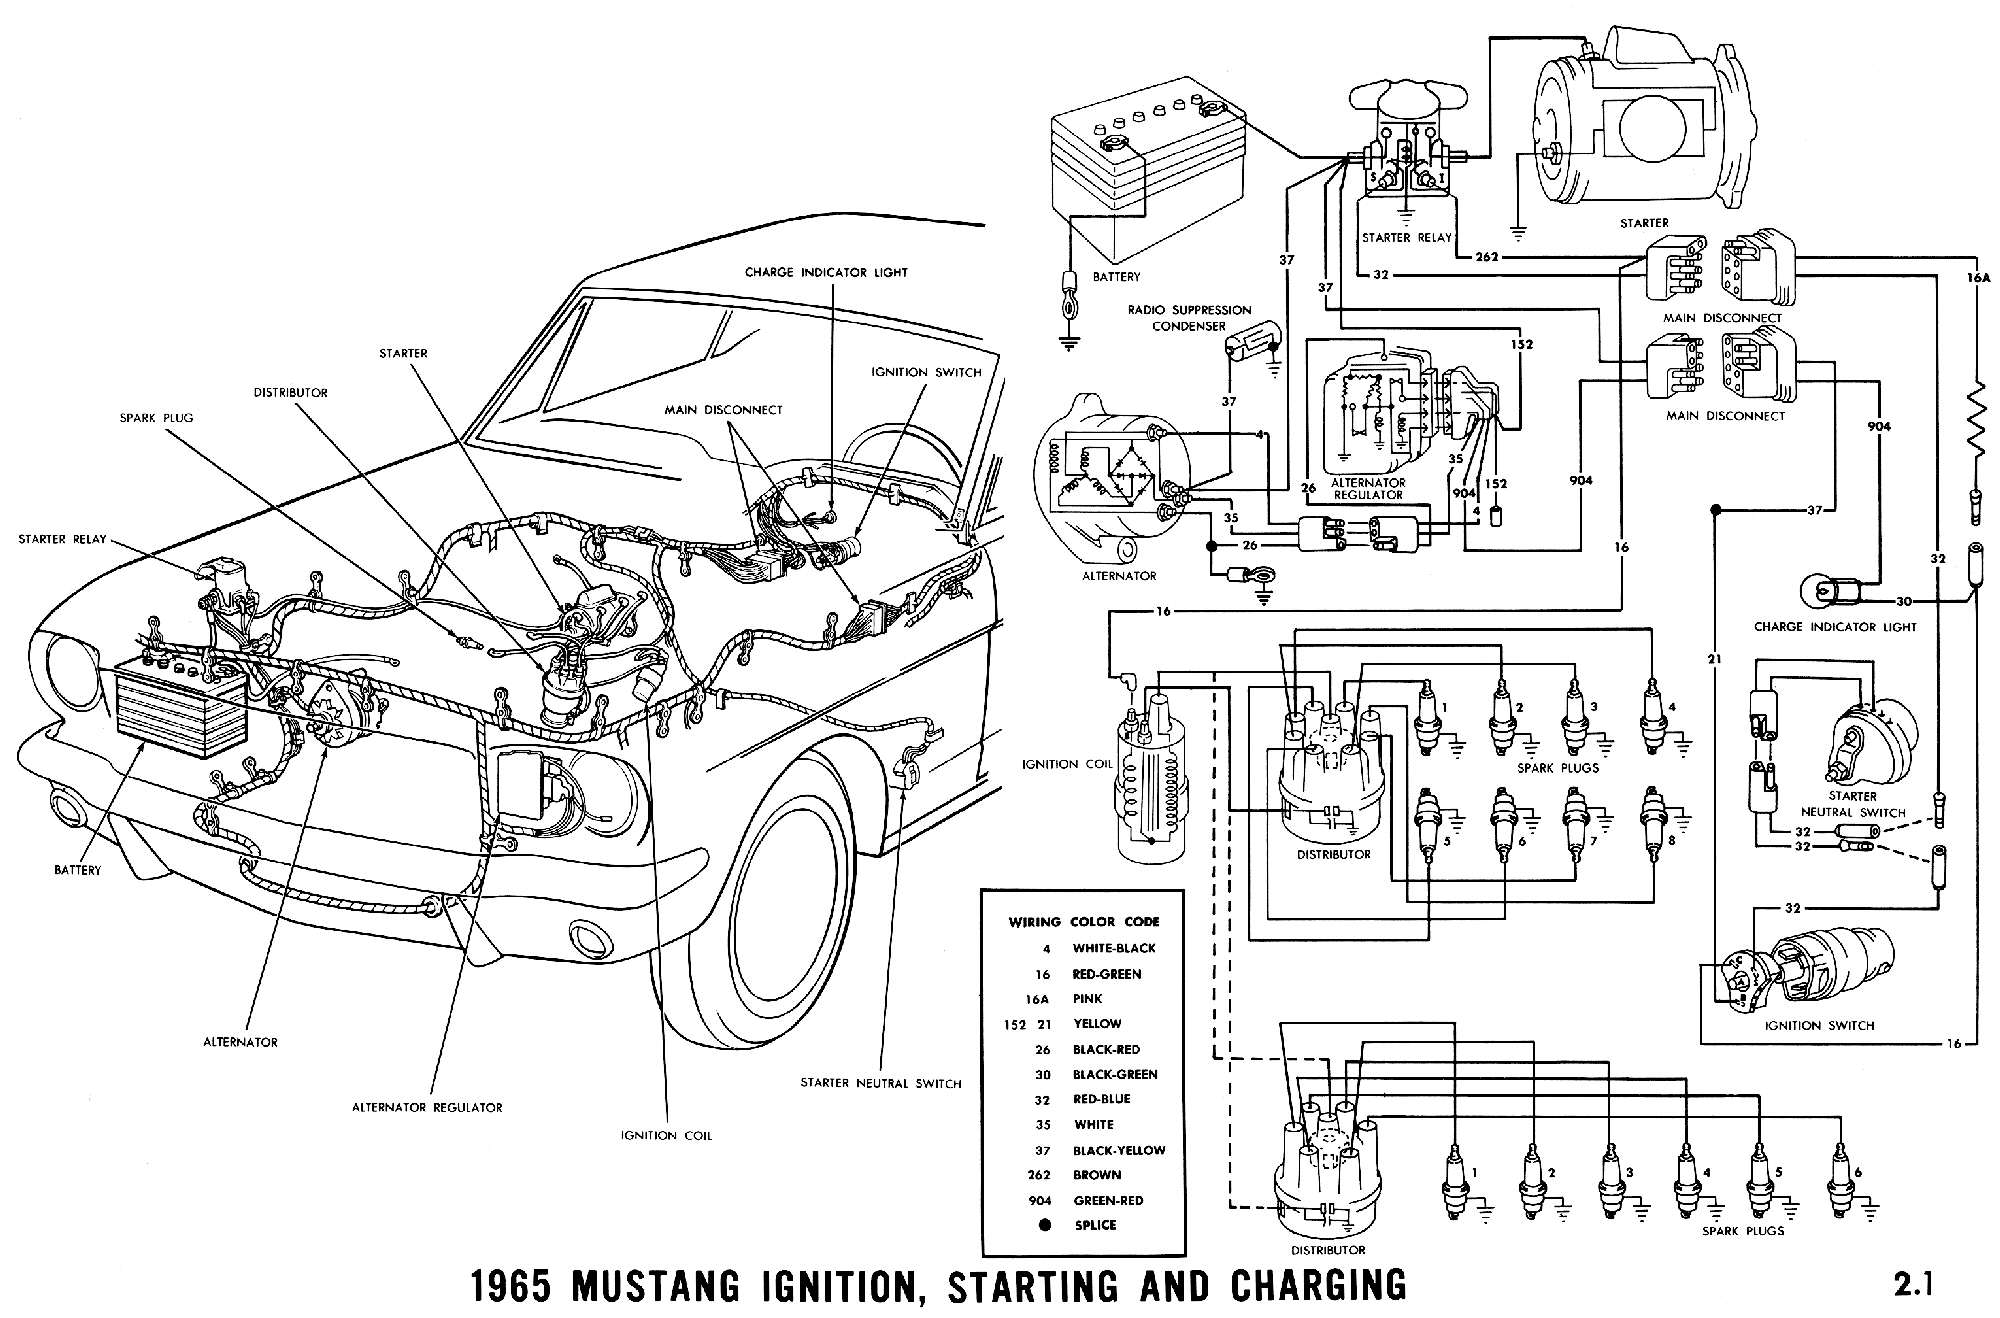 1965 Mustang Wiring Diagram For Lighting Data 2006 Ford Harness Diagrams Average Joe Restoration 67 Alternator Ignition